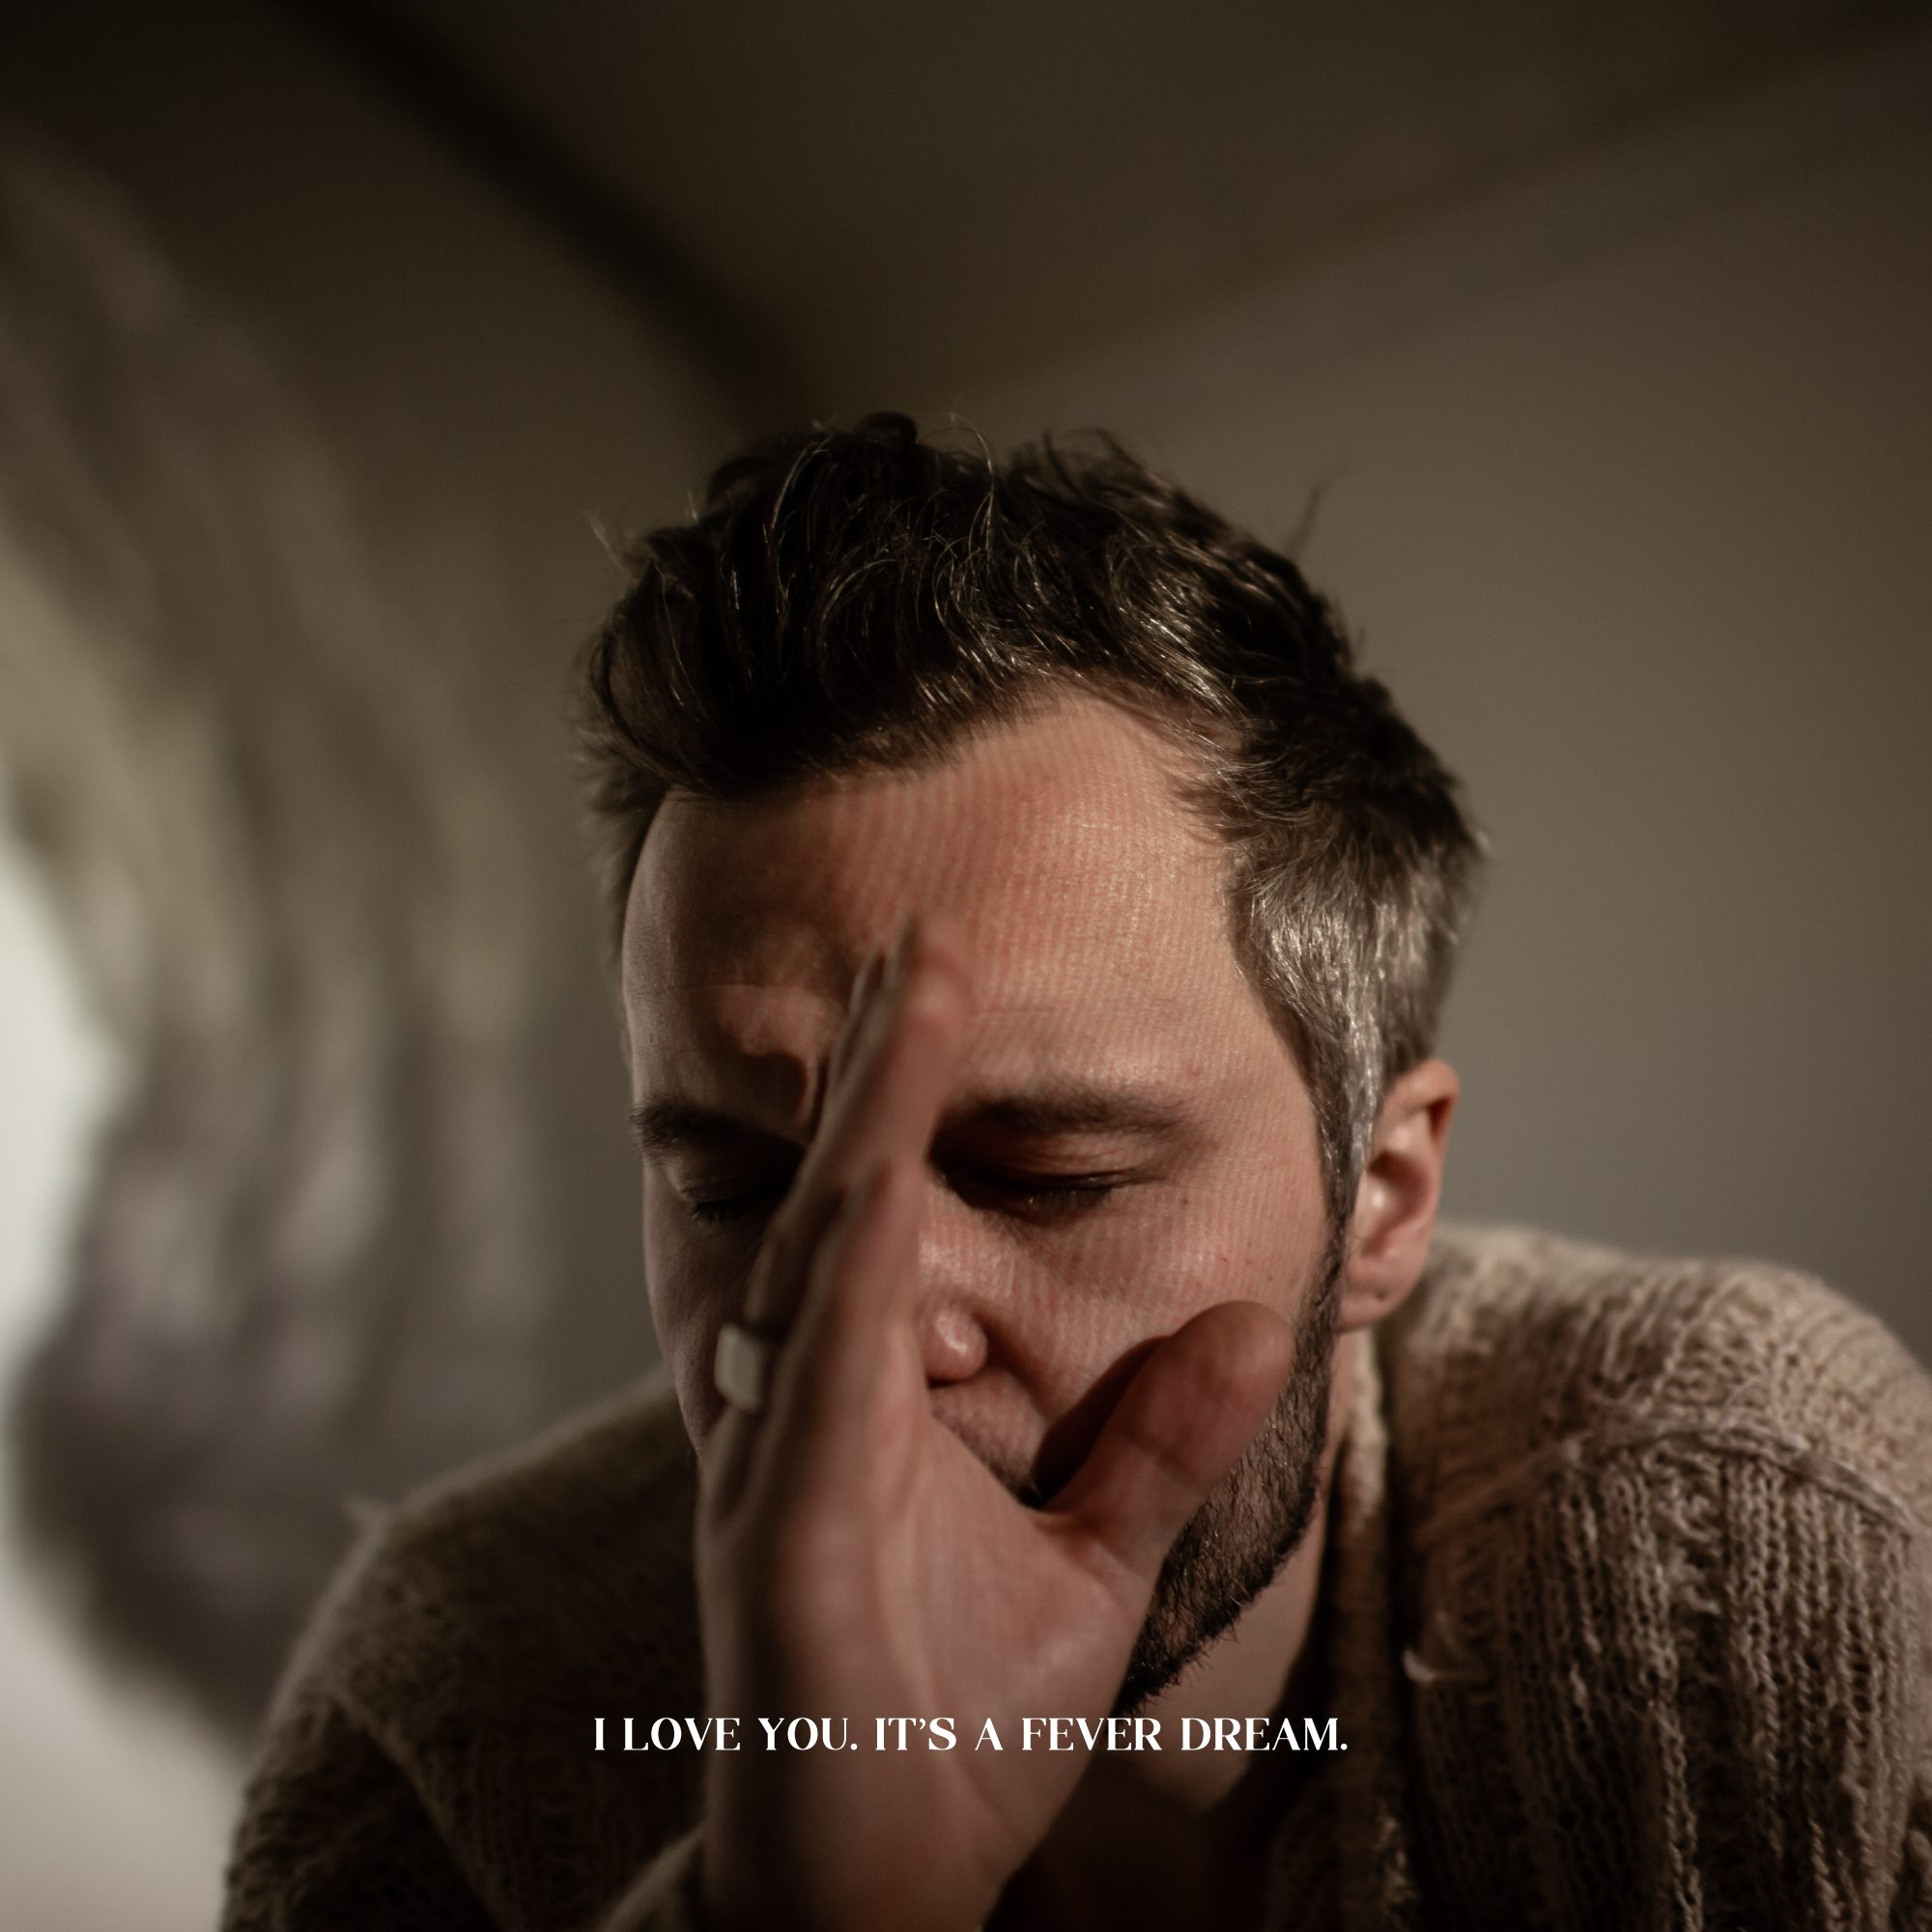 The Tallest Man on Earth is streaming his new new album, Love You. It's A Fever Dream